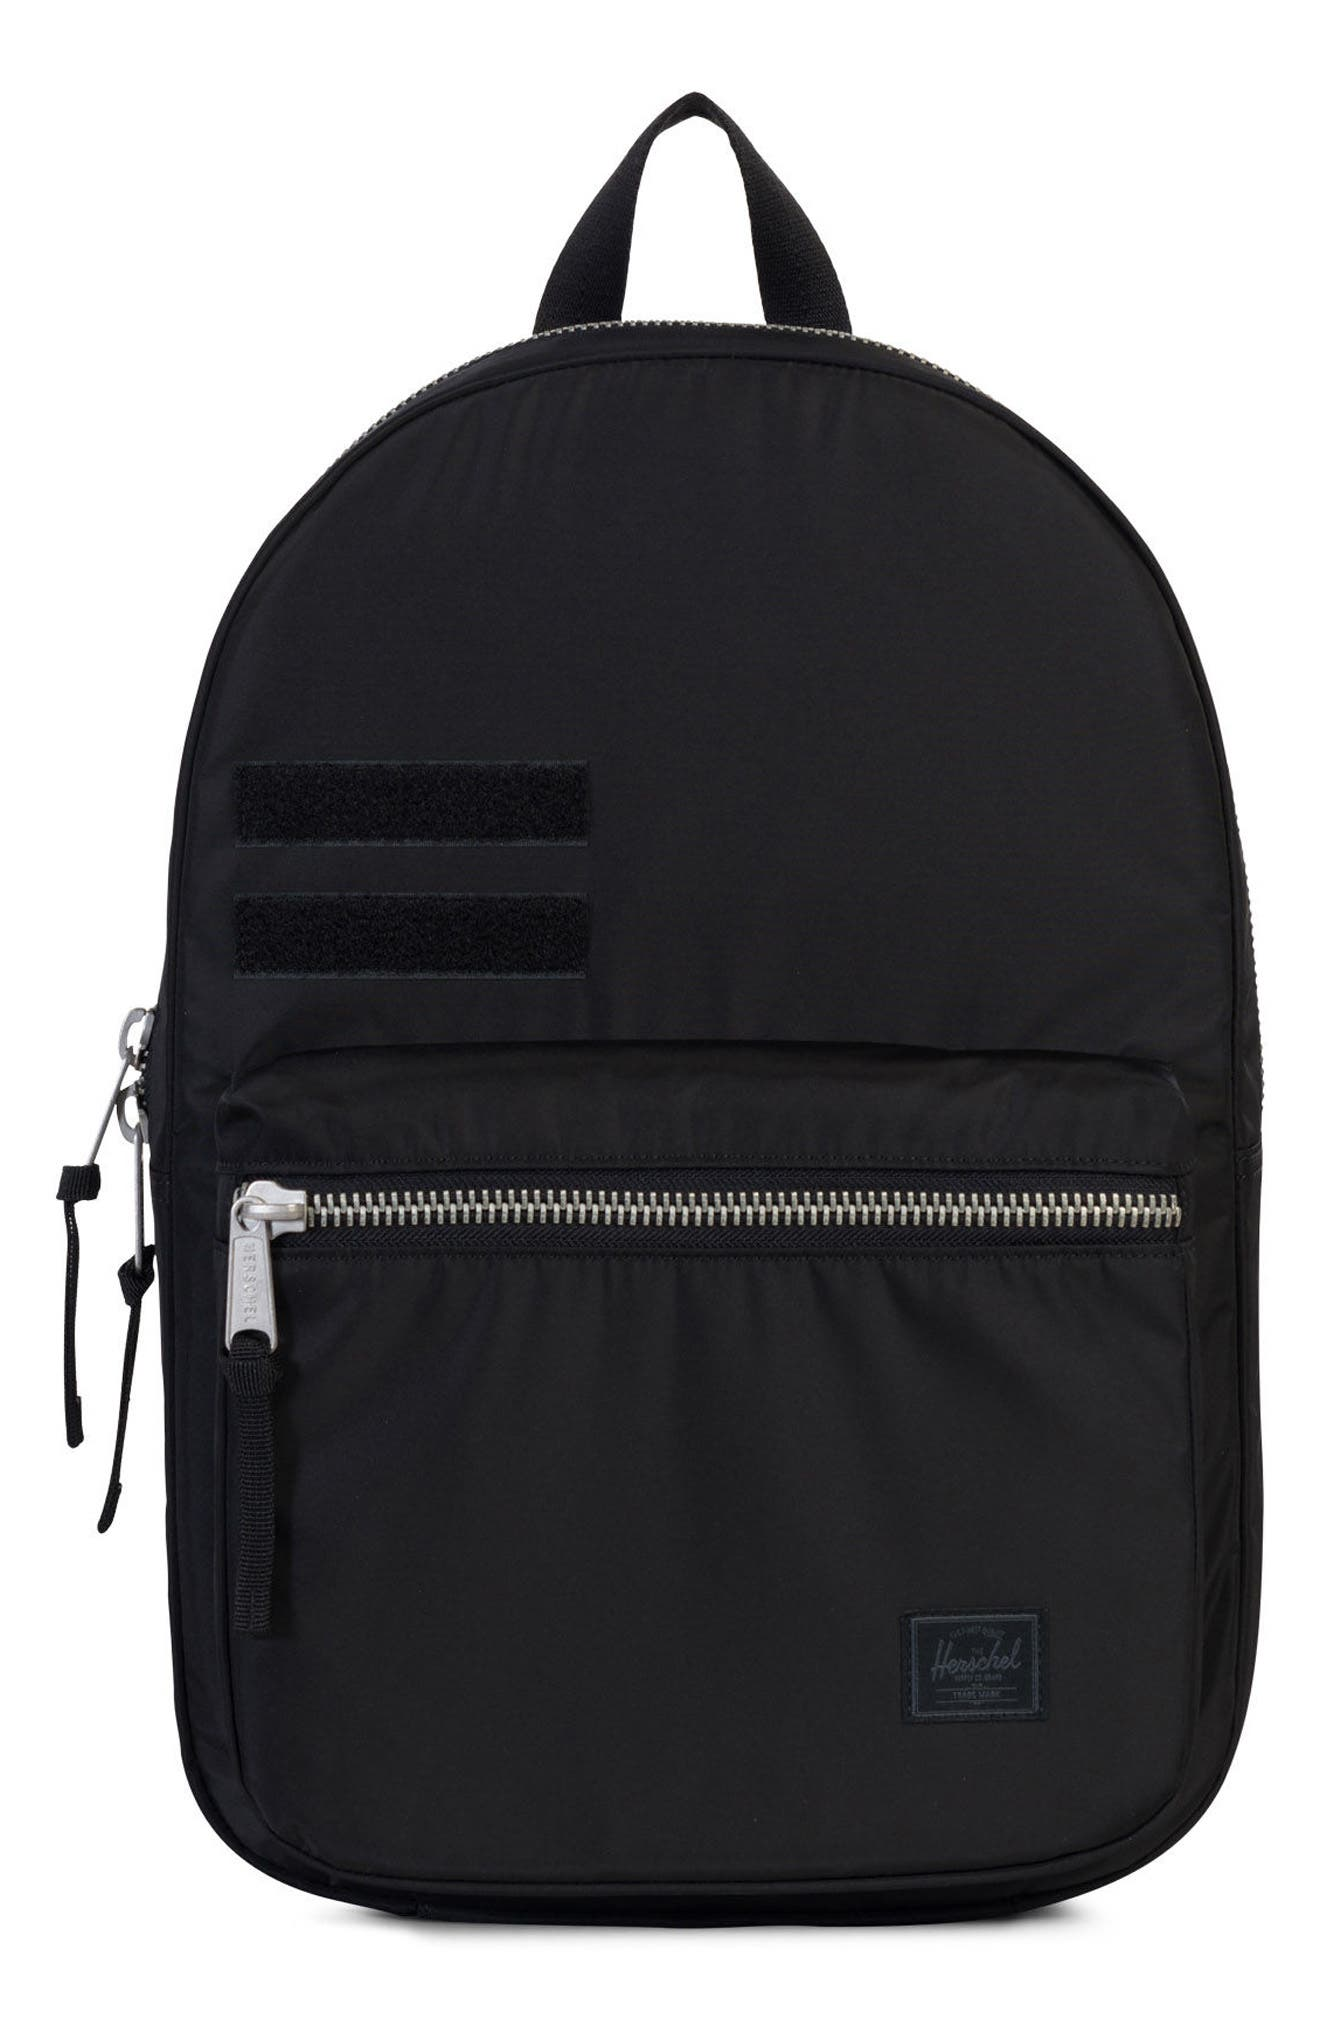 Main Image - Herschel Supply Co. Lawson Surplus Collection Backpack